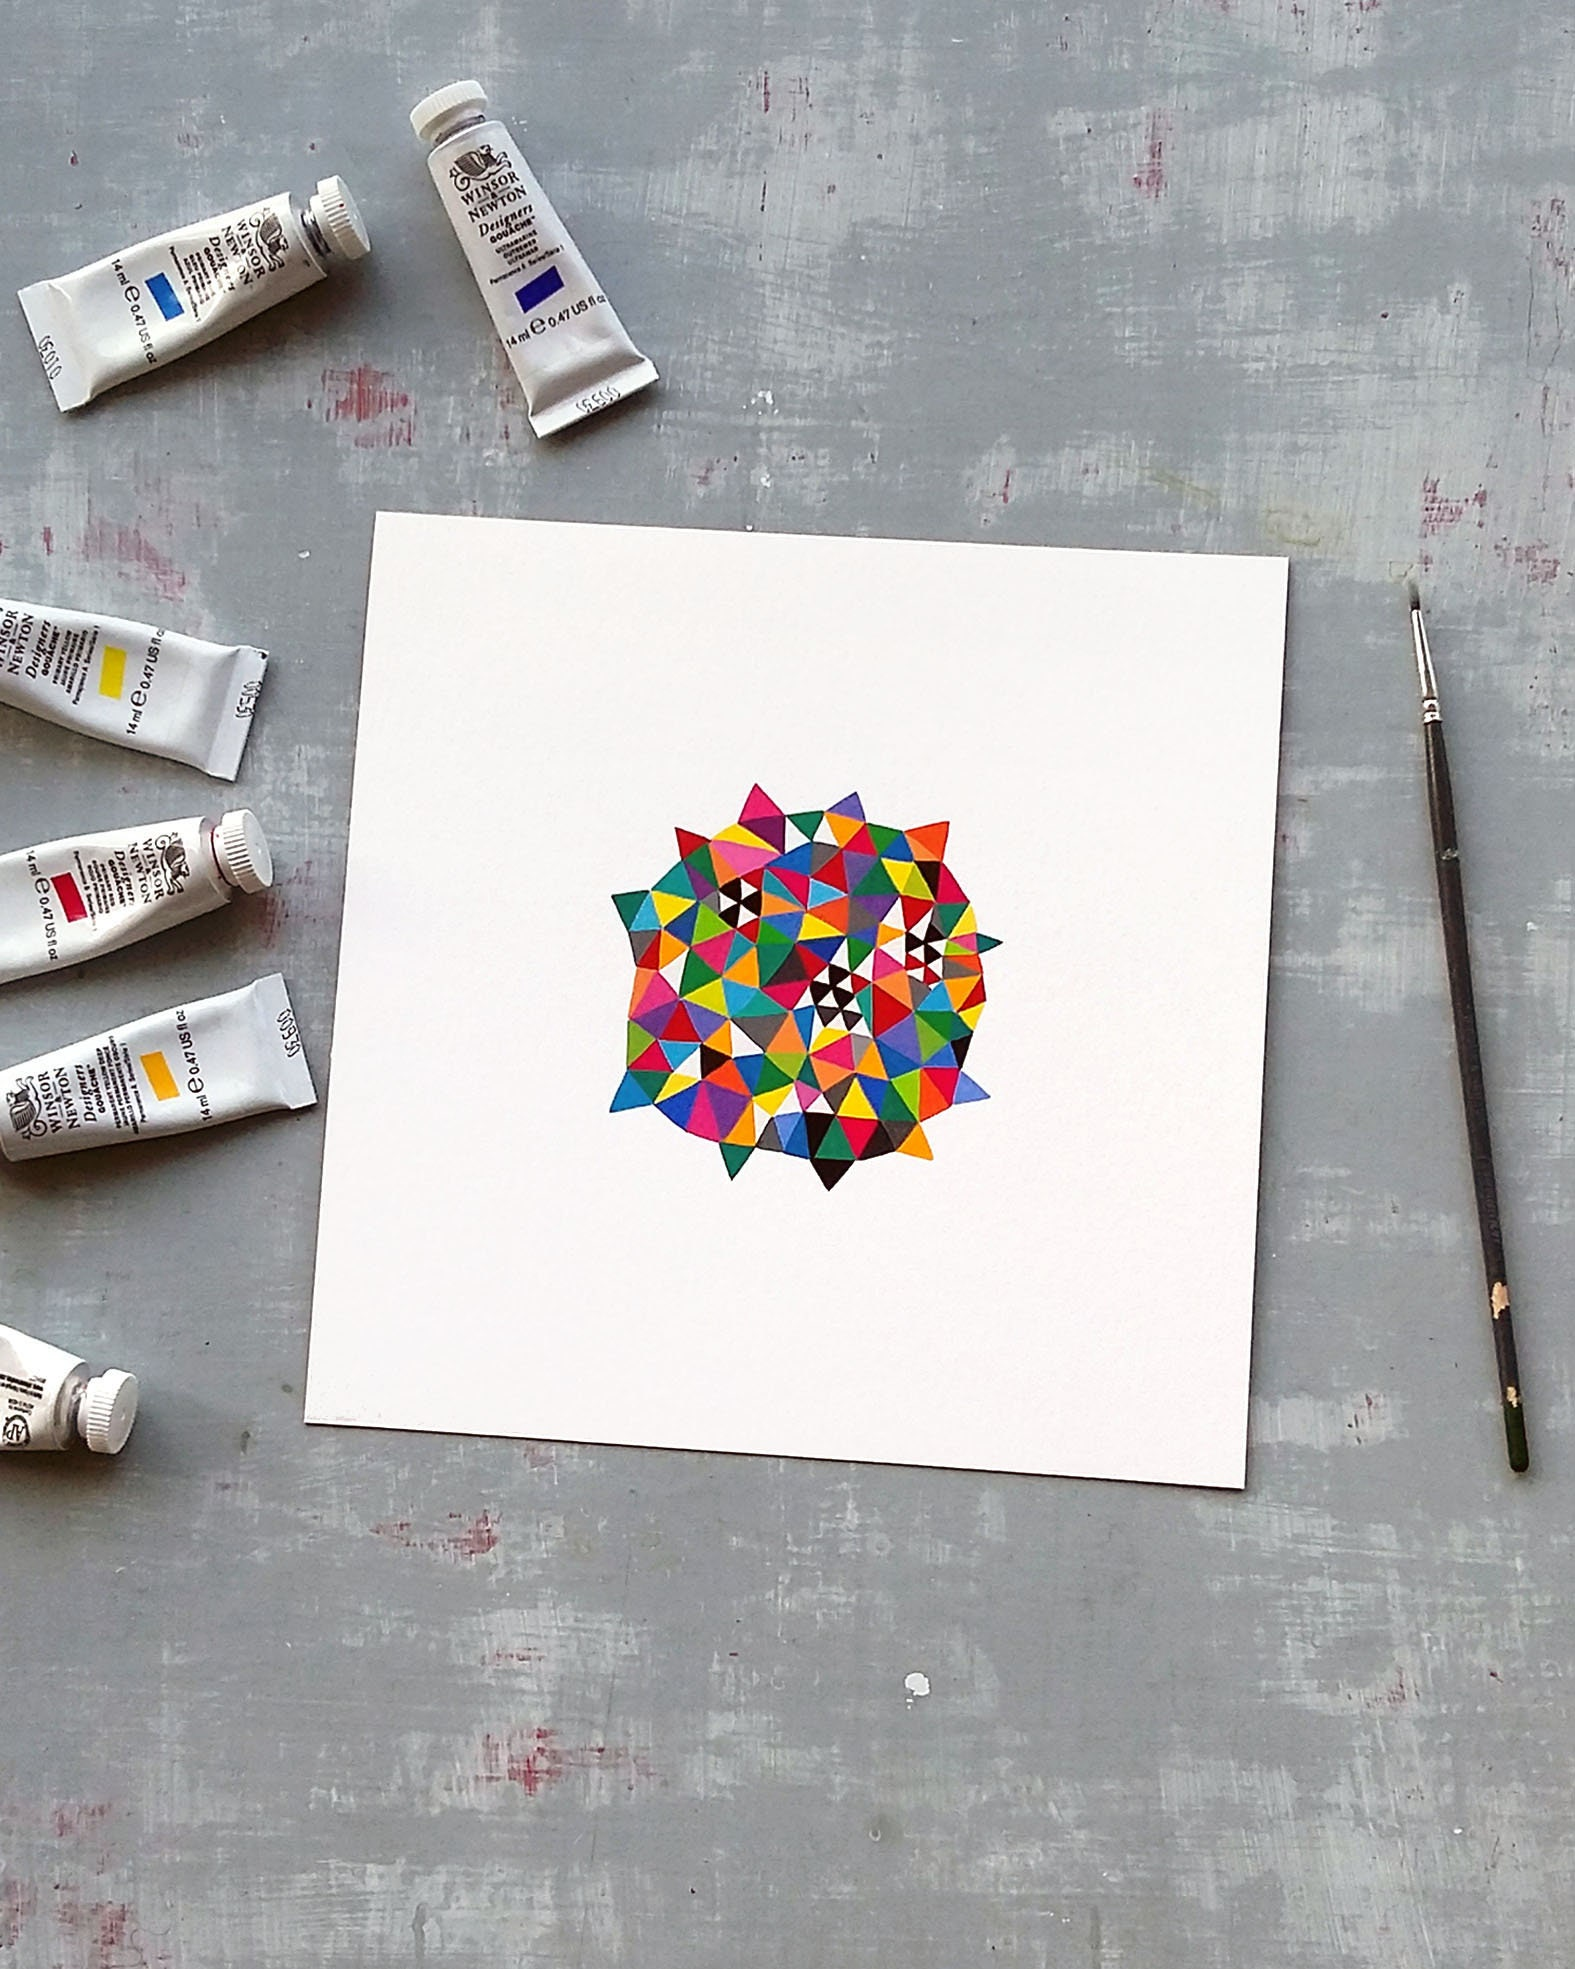 Germ_001, colourful geometric art on paper - product image